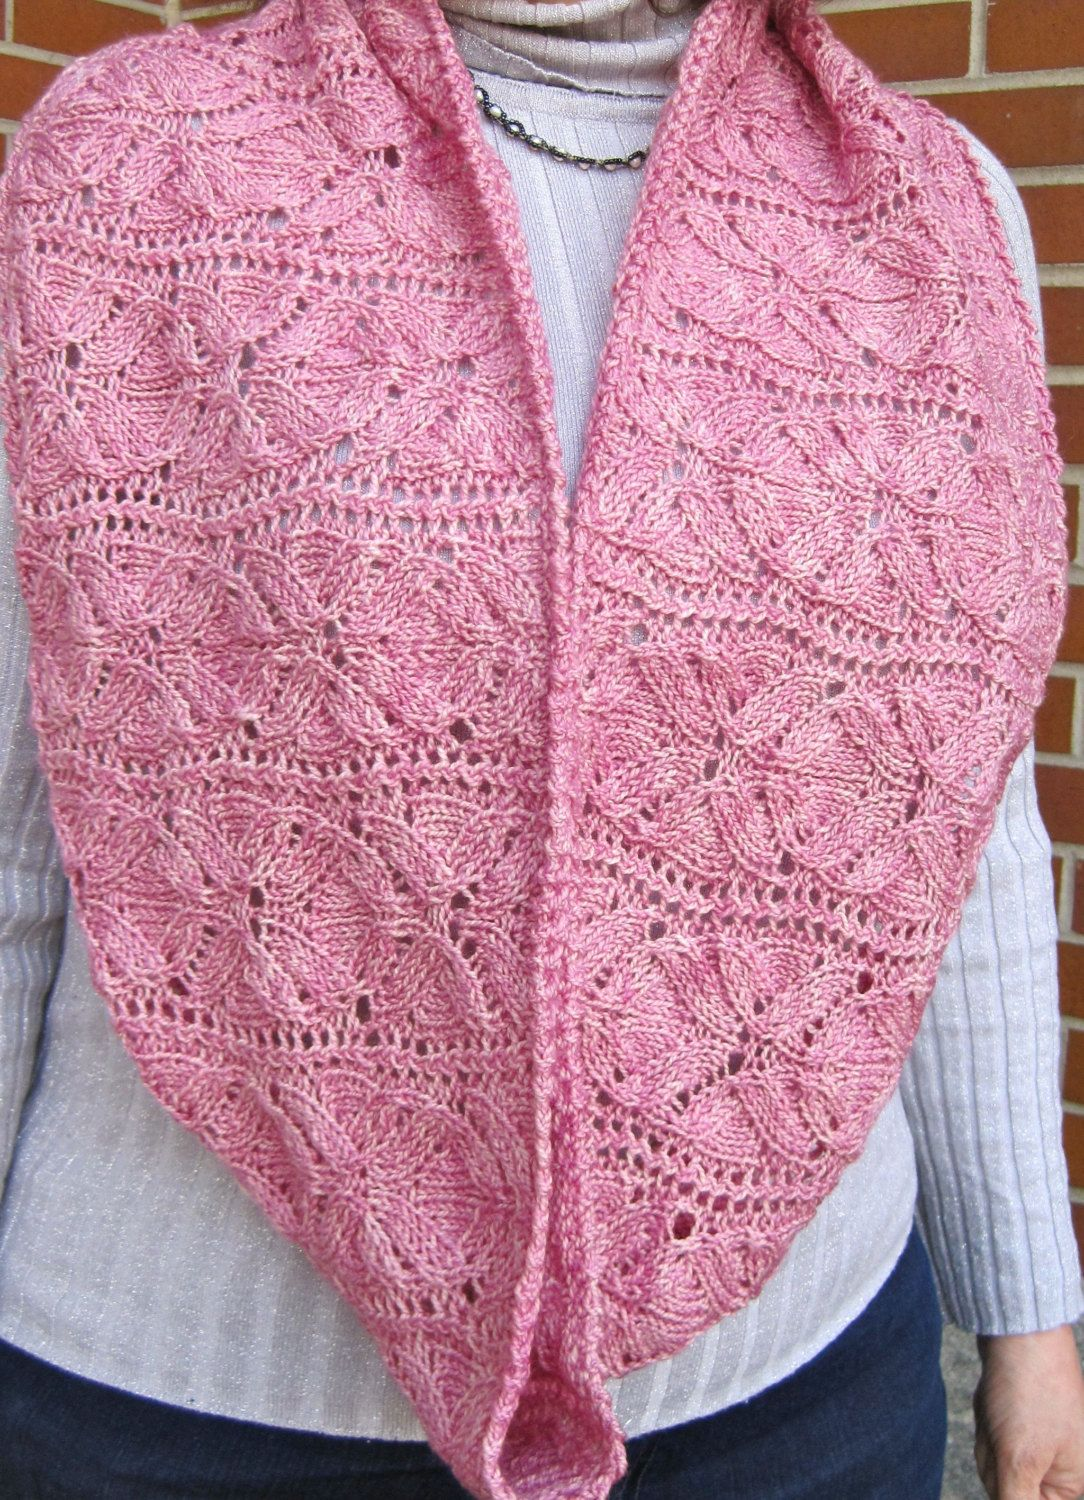 Knitting Pattern for Vinco Lace Flower Cowl - Lace infinity scarf ...